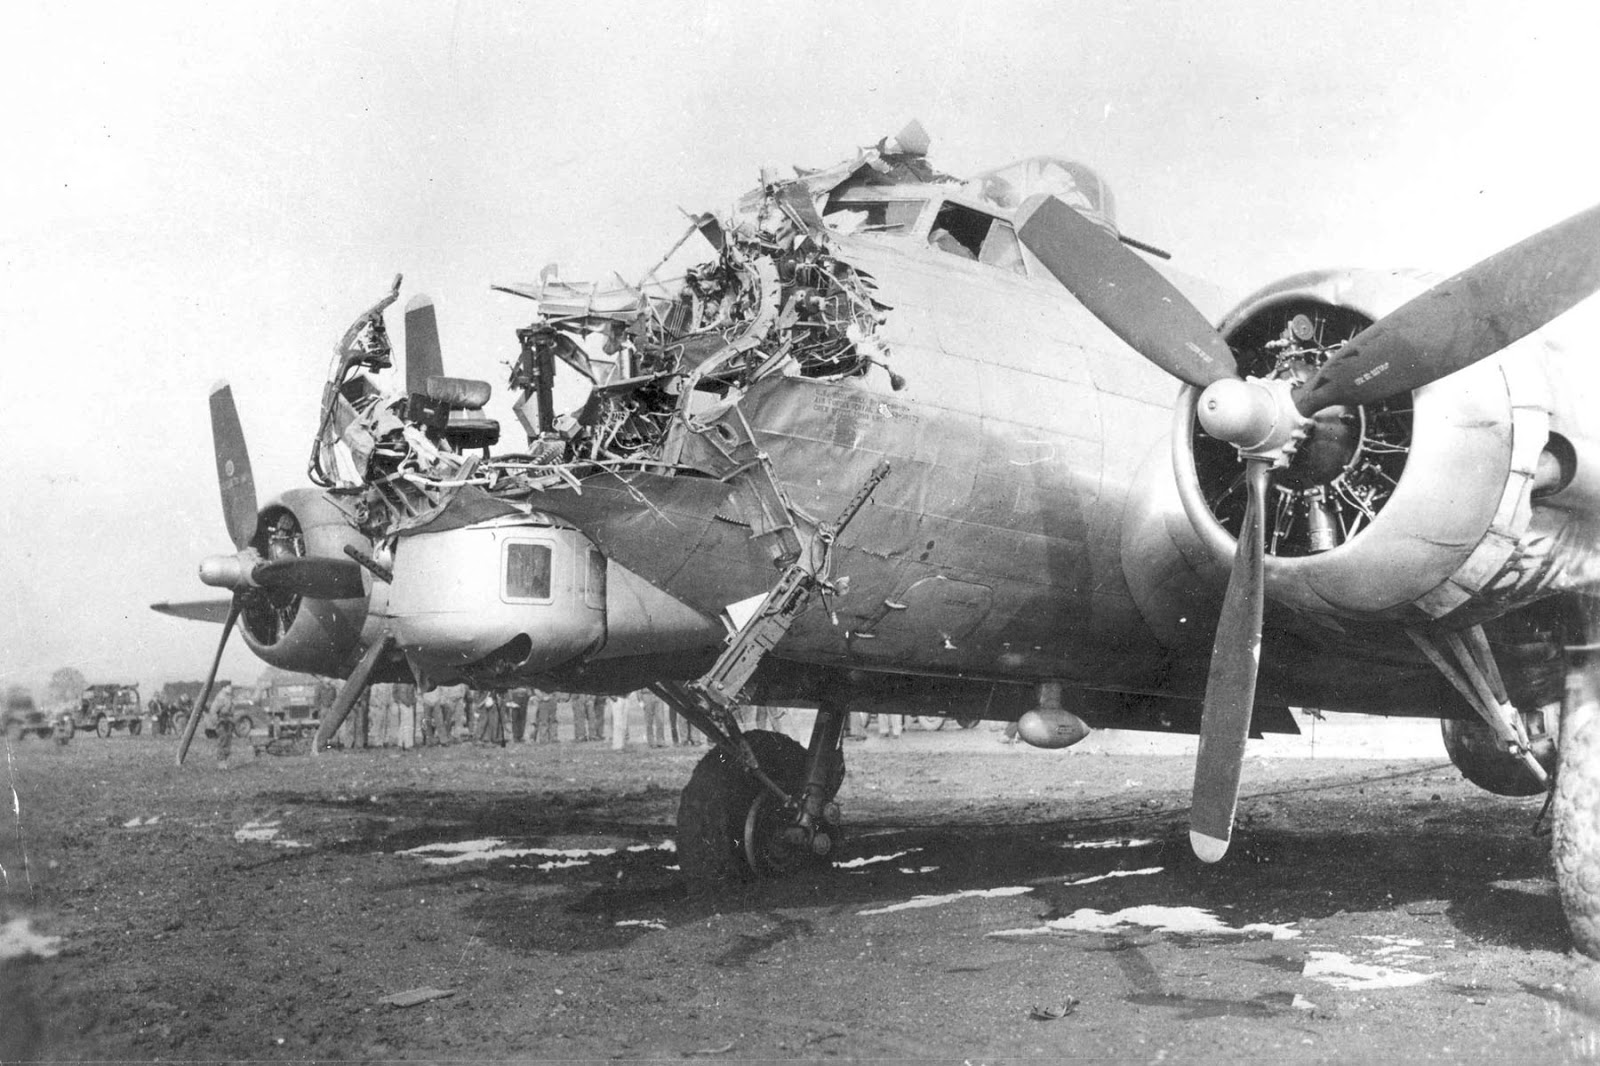 Heroes, Heroines, and History: The Amazing B-17 Bomber in WWII